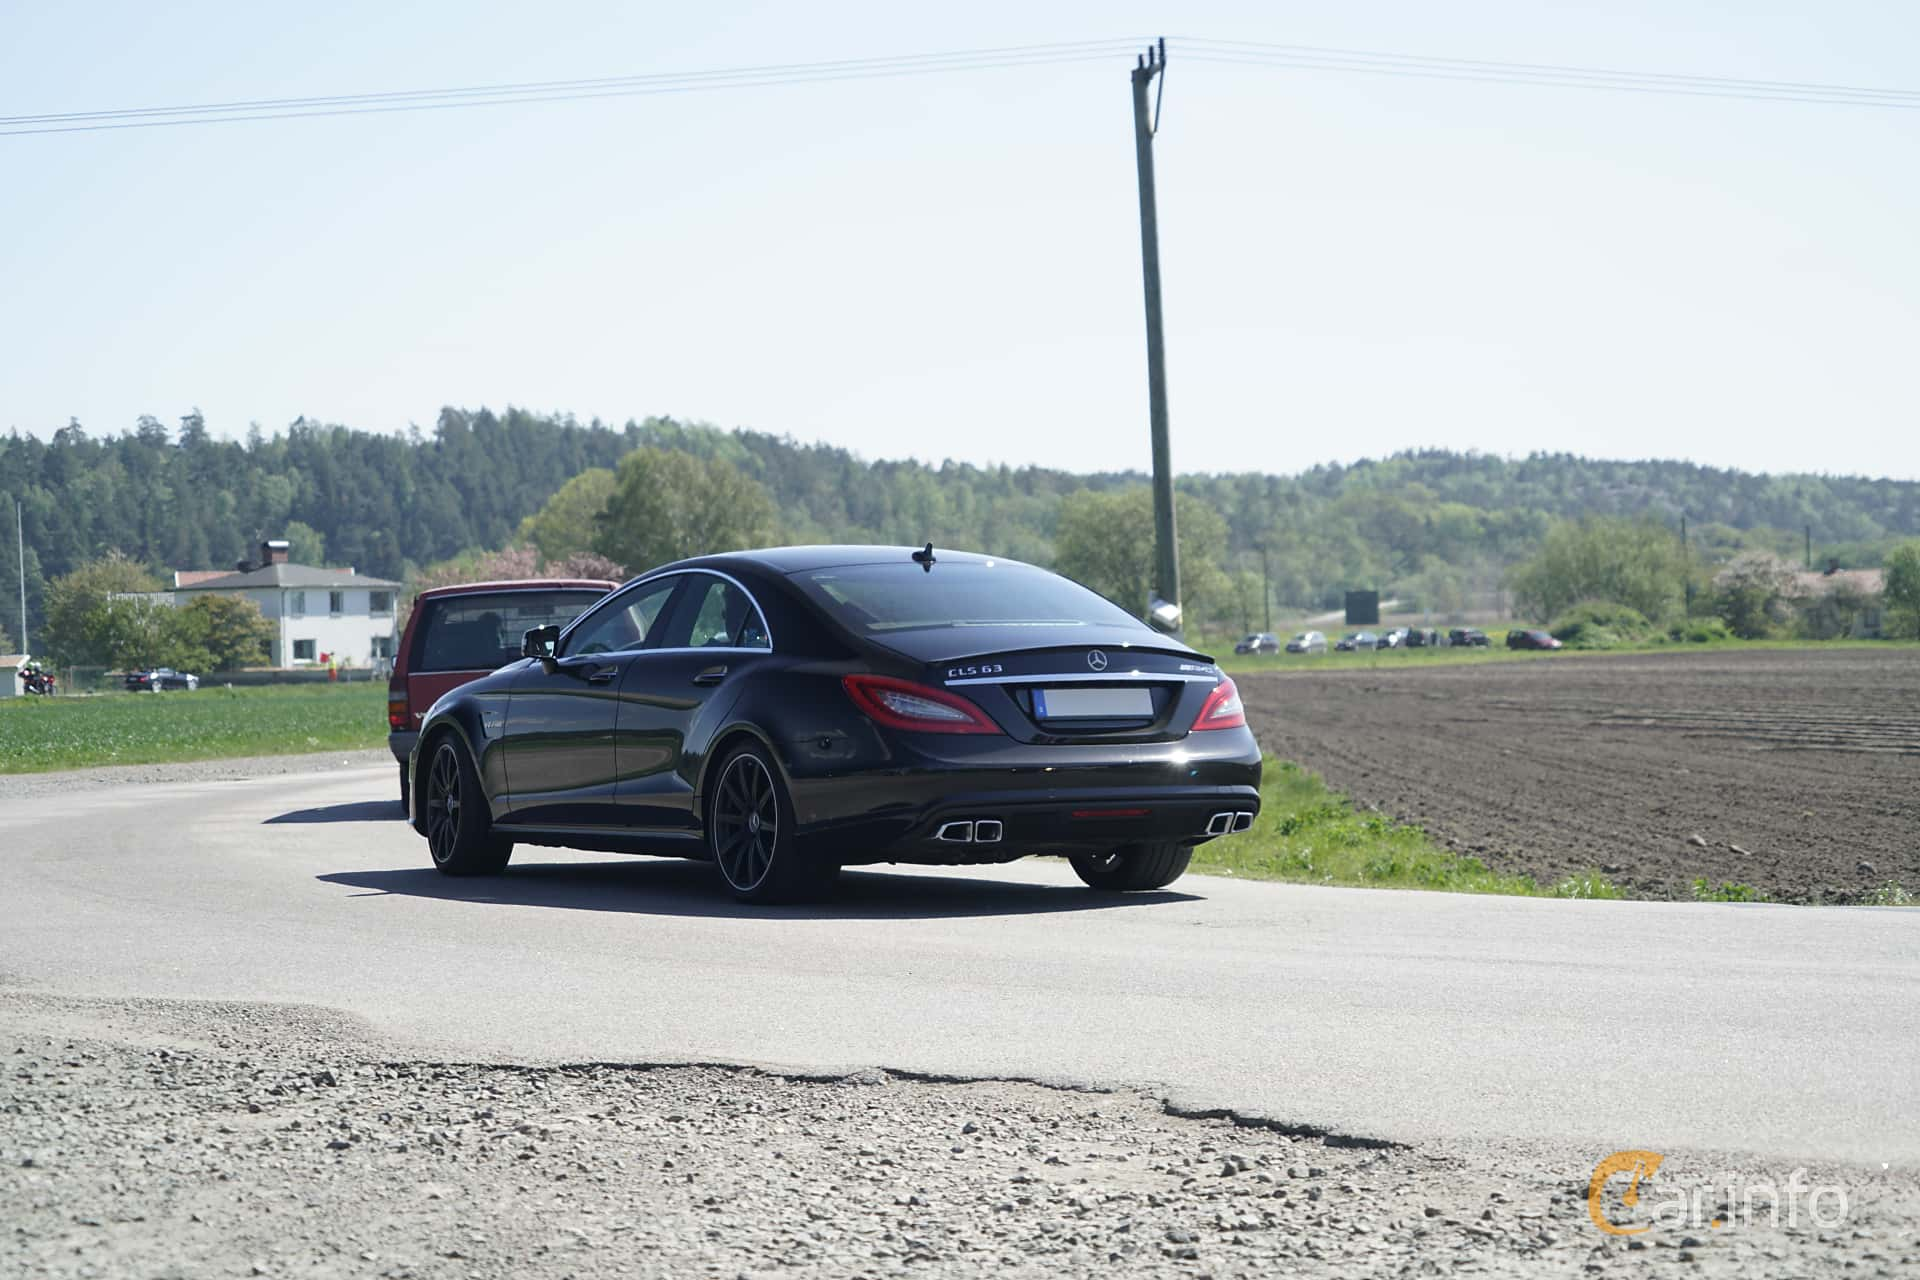 User images of Mercedes Benz CLS 63 AMG AMG SpeedShift MCT 7 speed